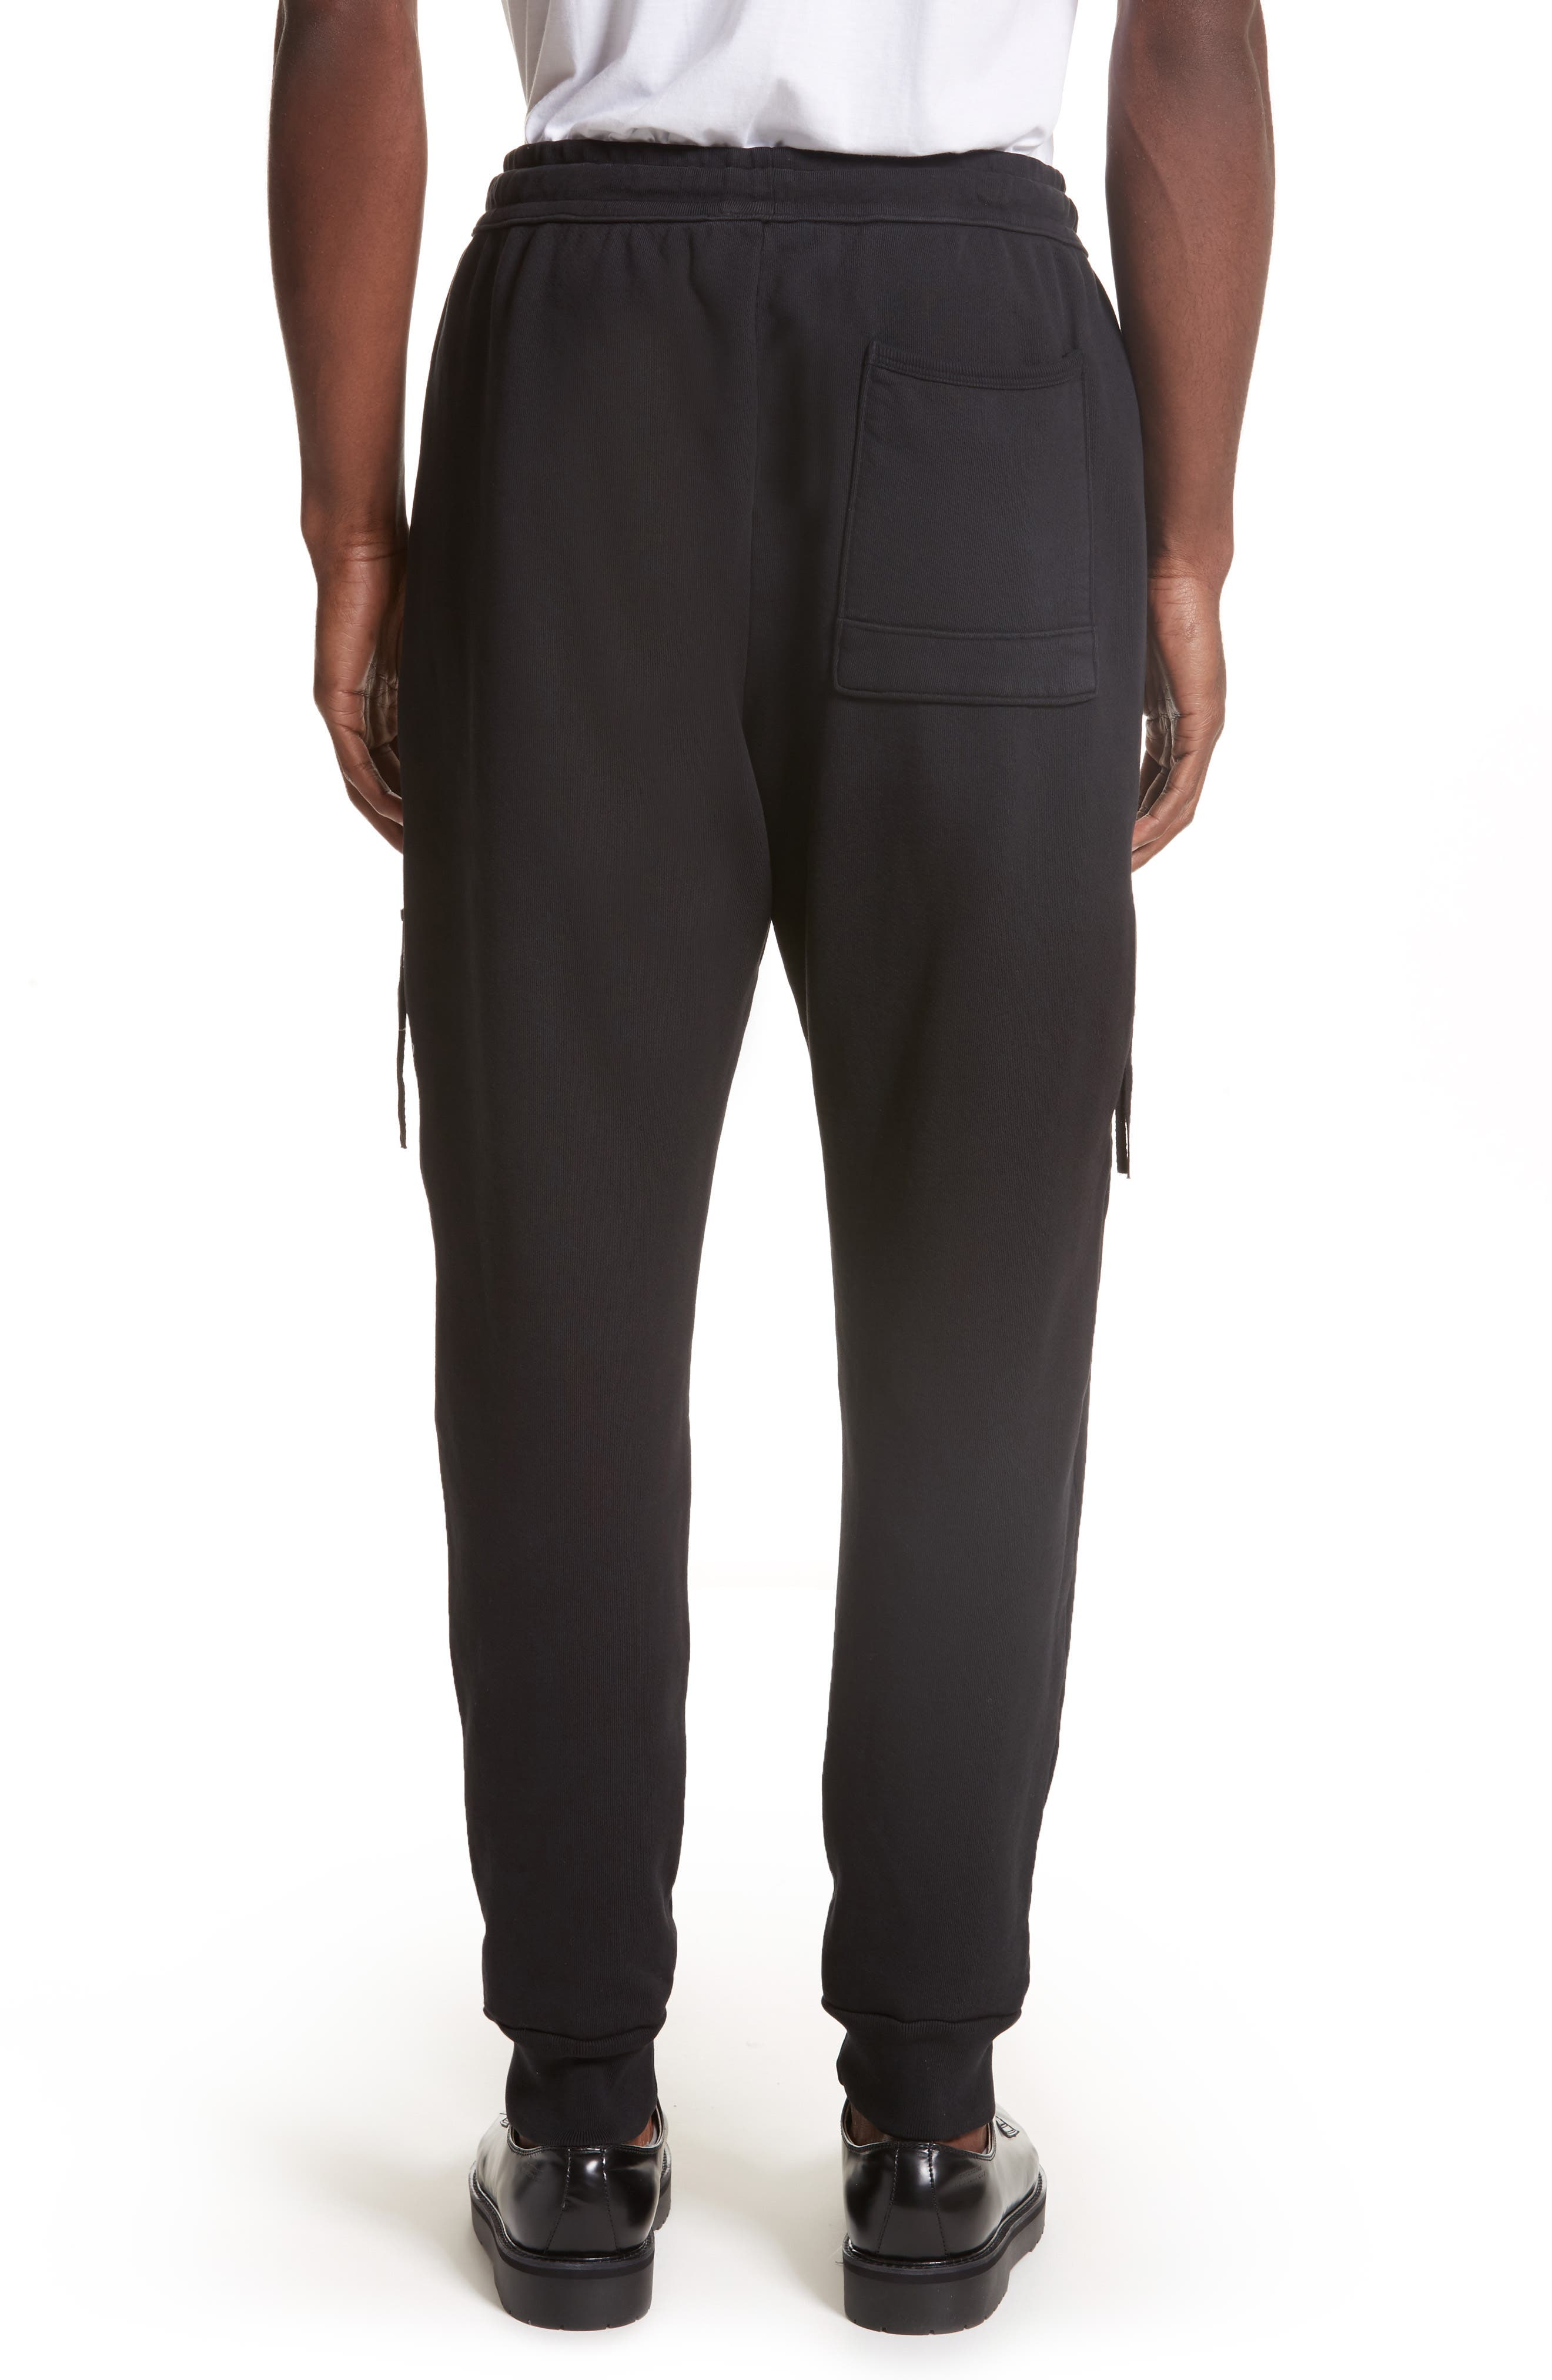 Muldoom Cargo Jogger Pants,                             Alternate thumbnail 5, color,